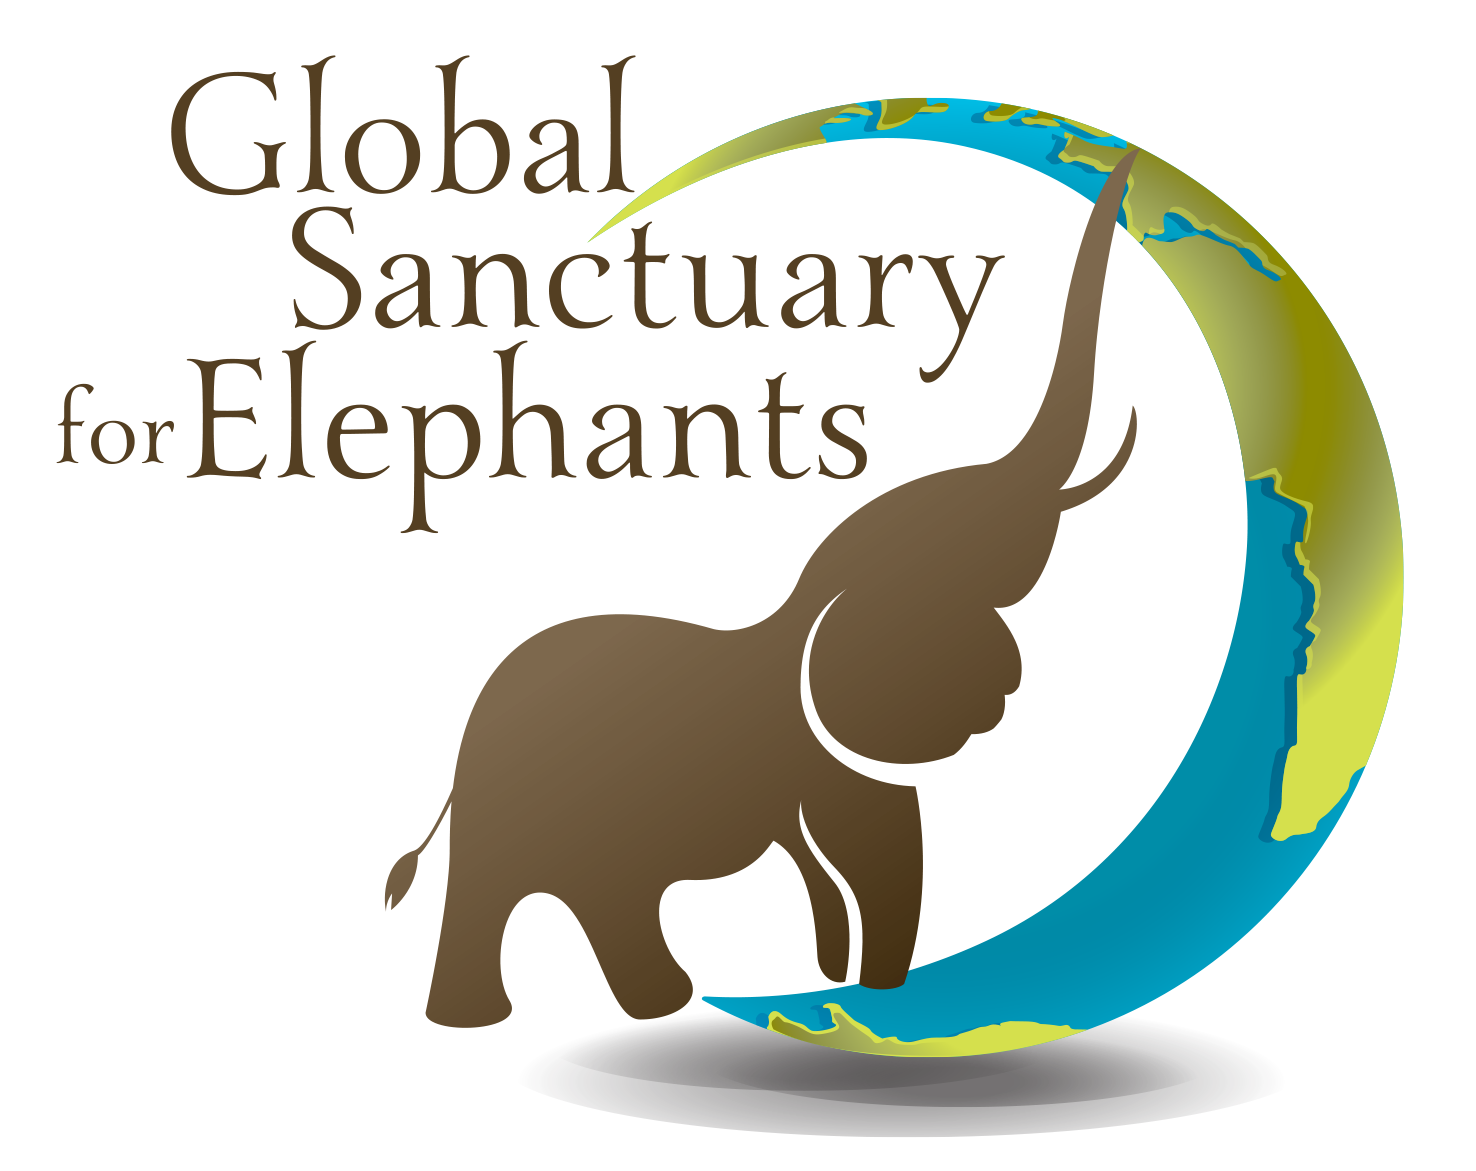 Global Sanctuary for Elephants logo